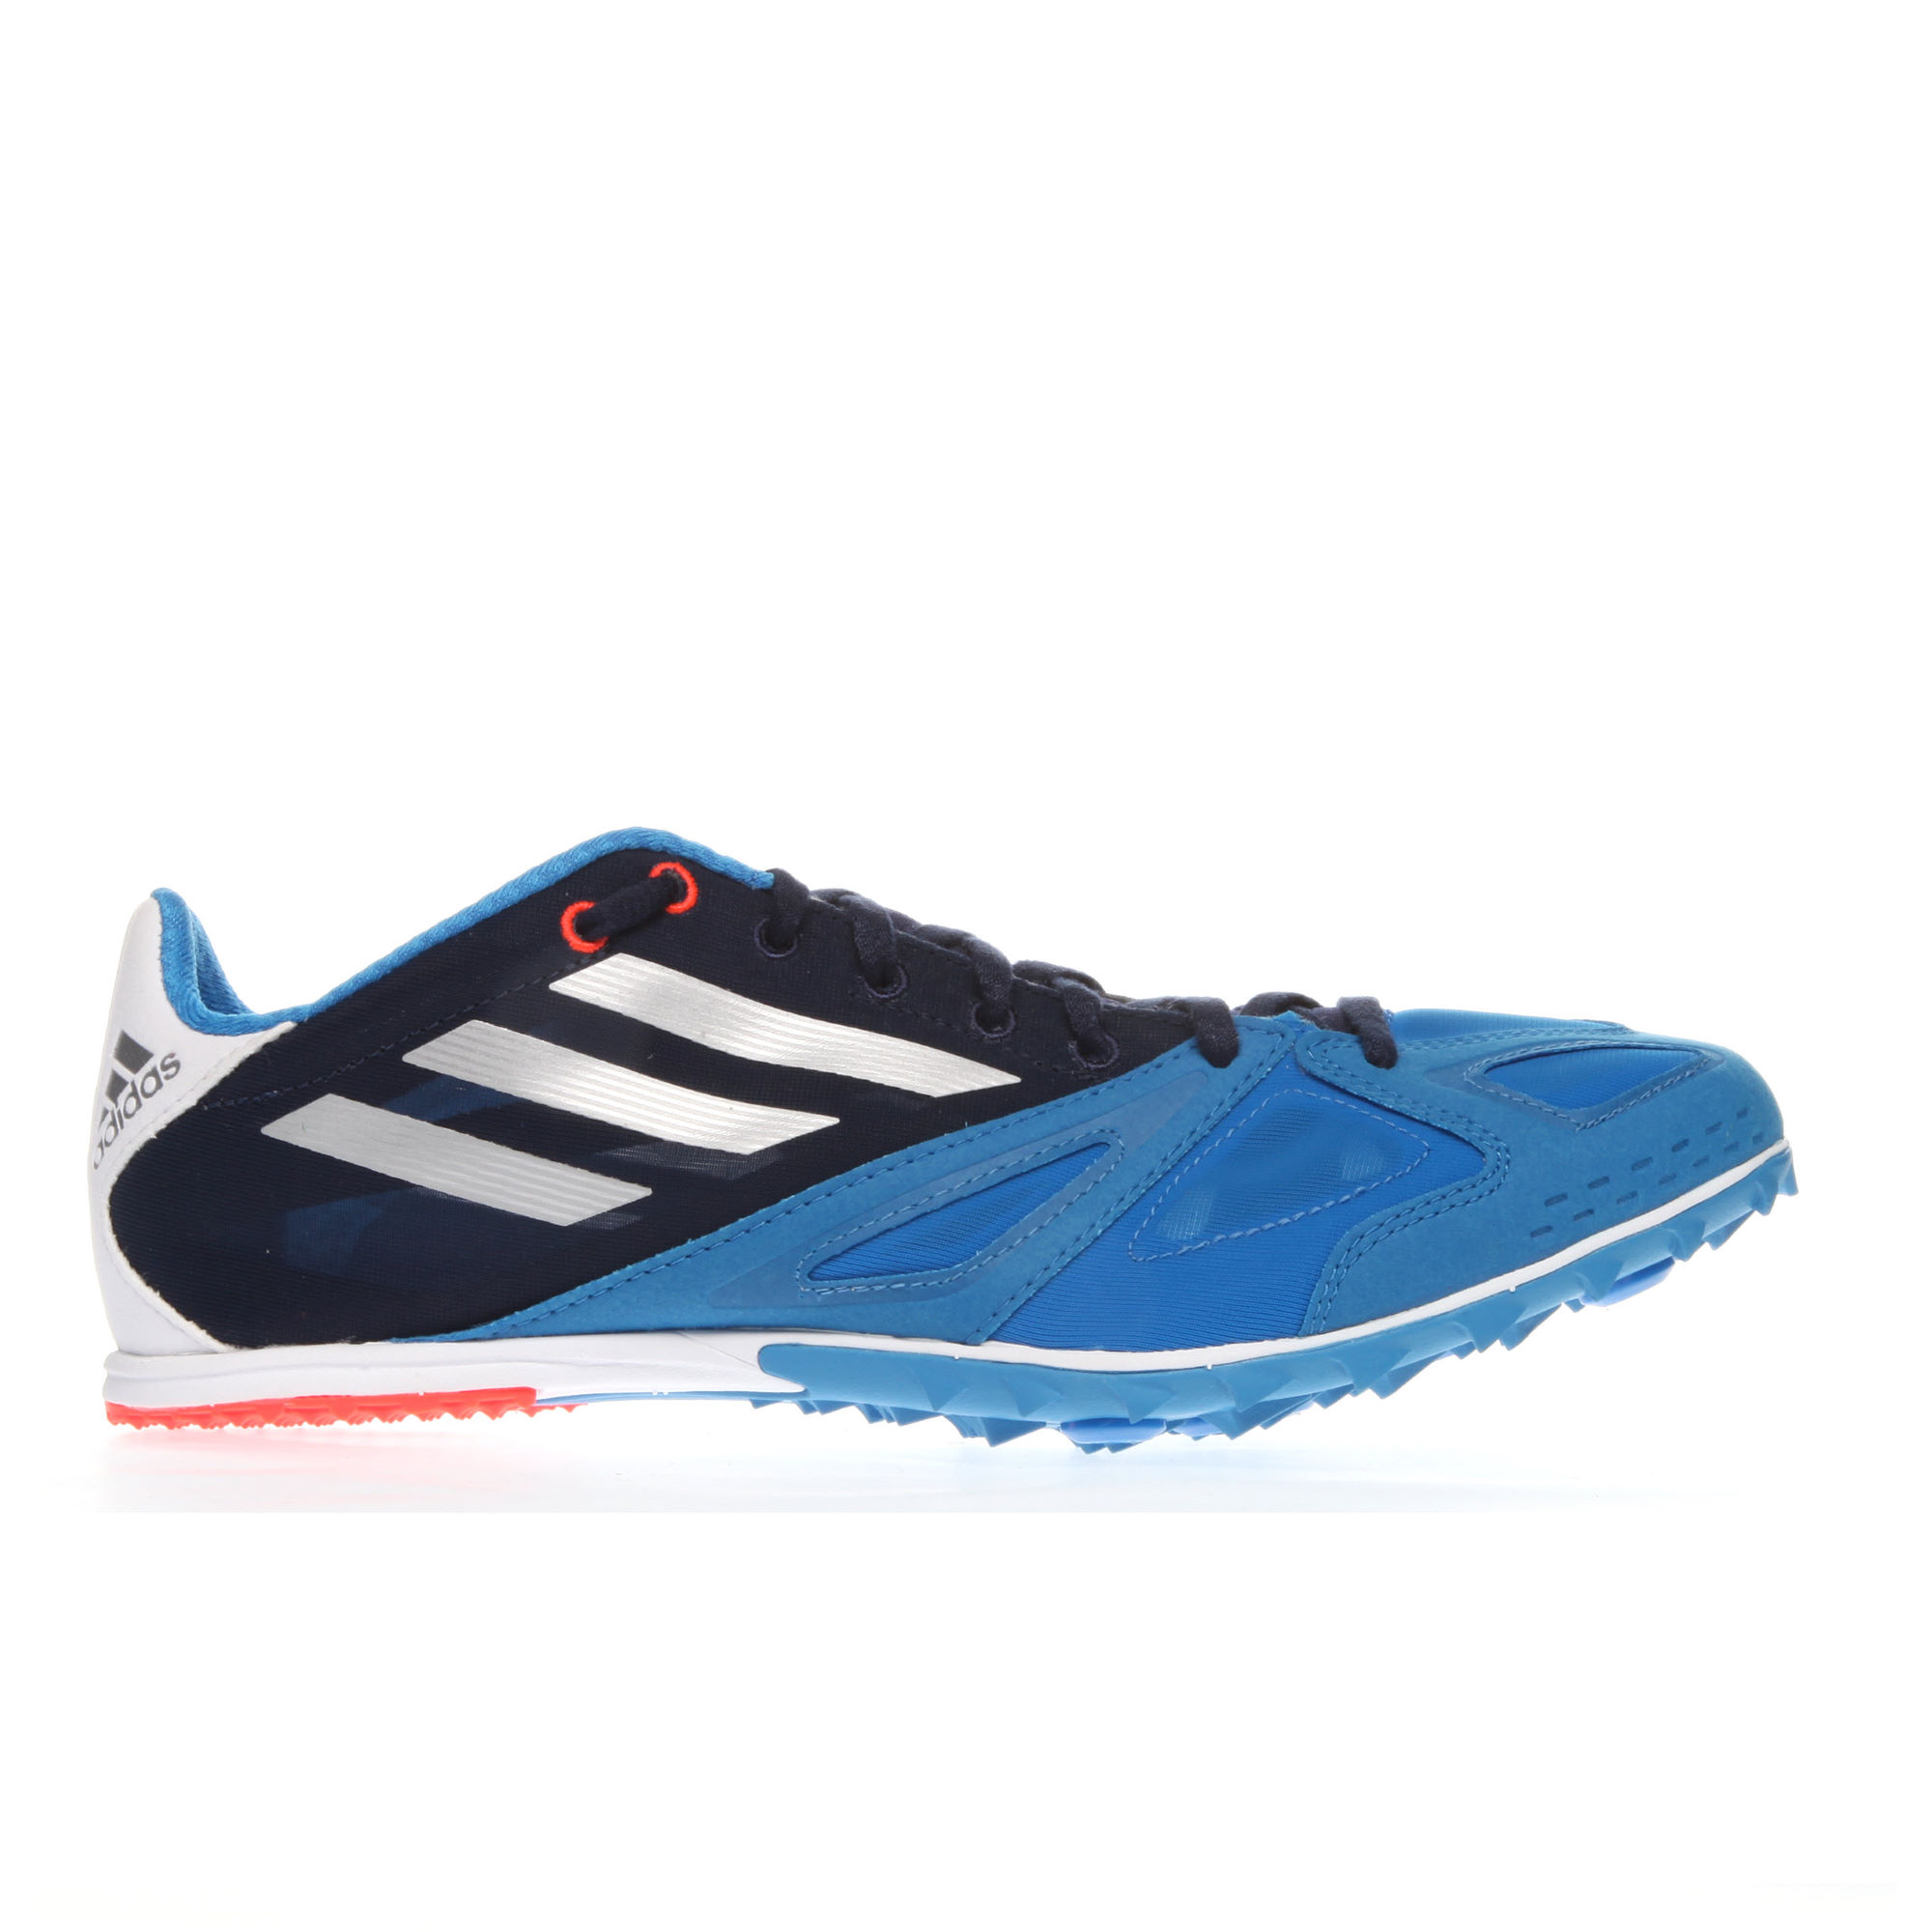 Kids Adidas Cross Country Running Shoes